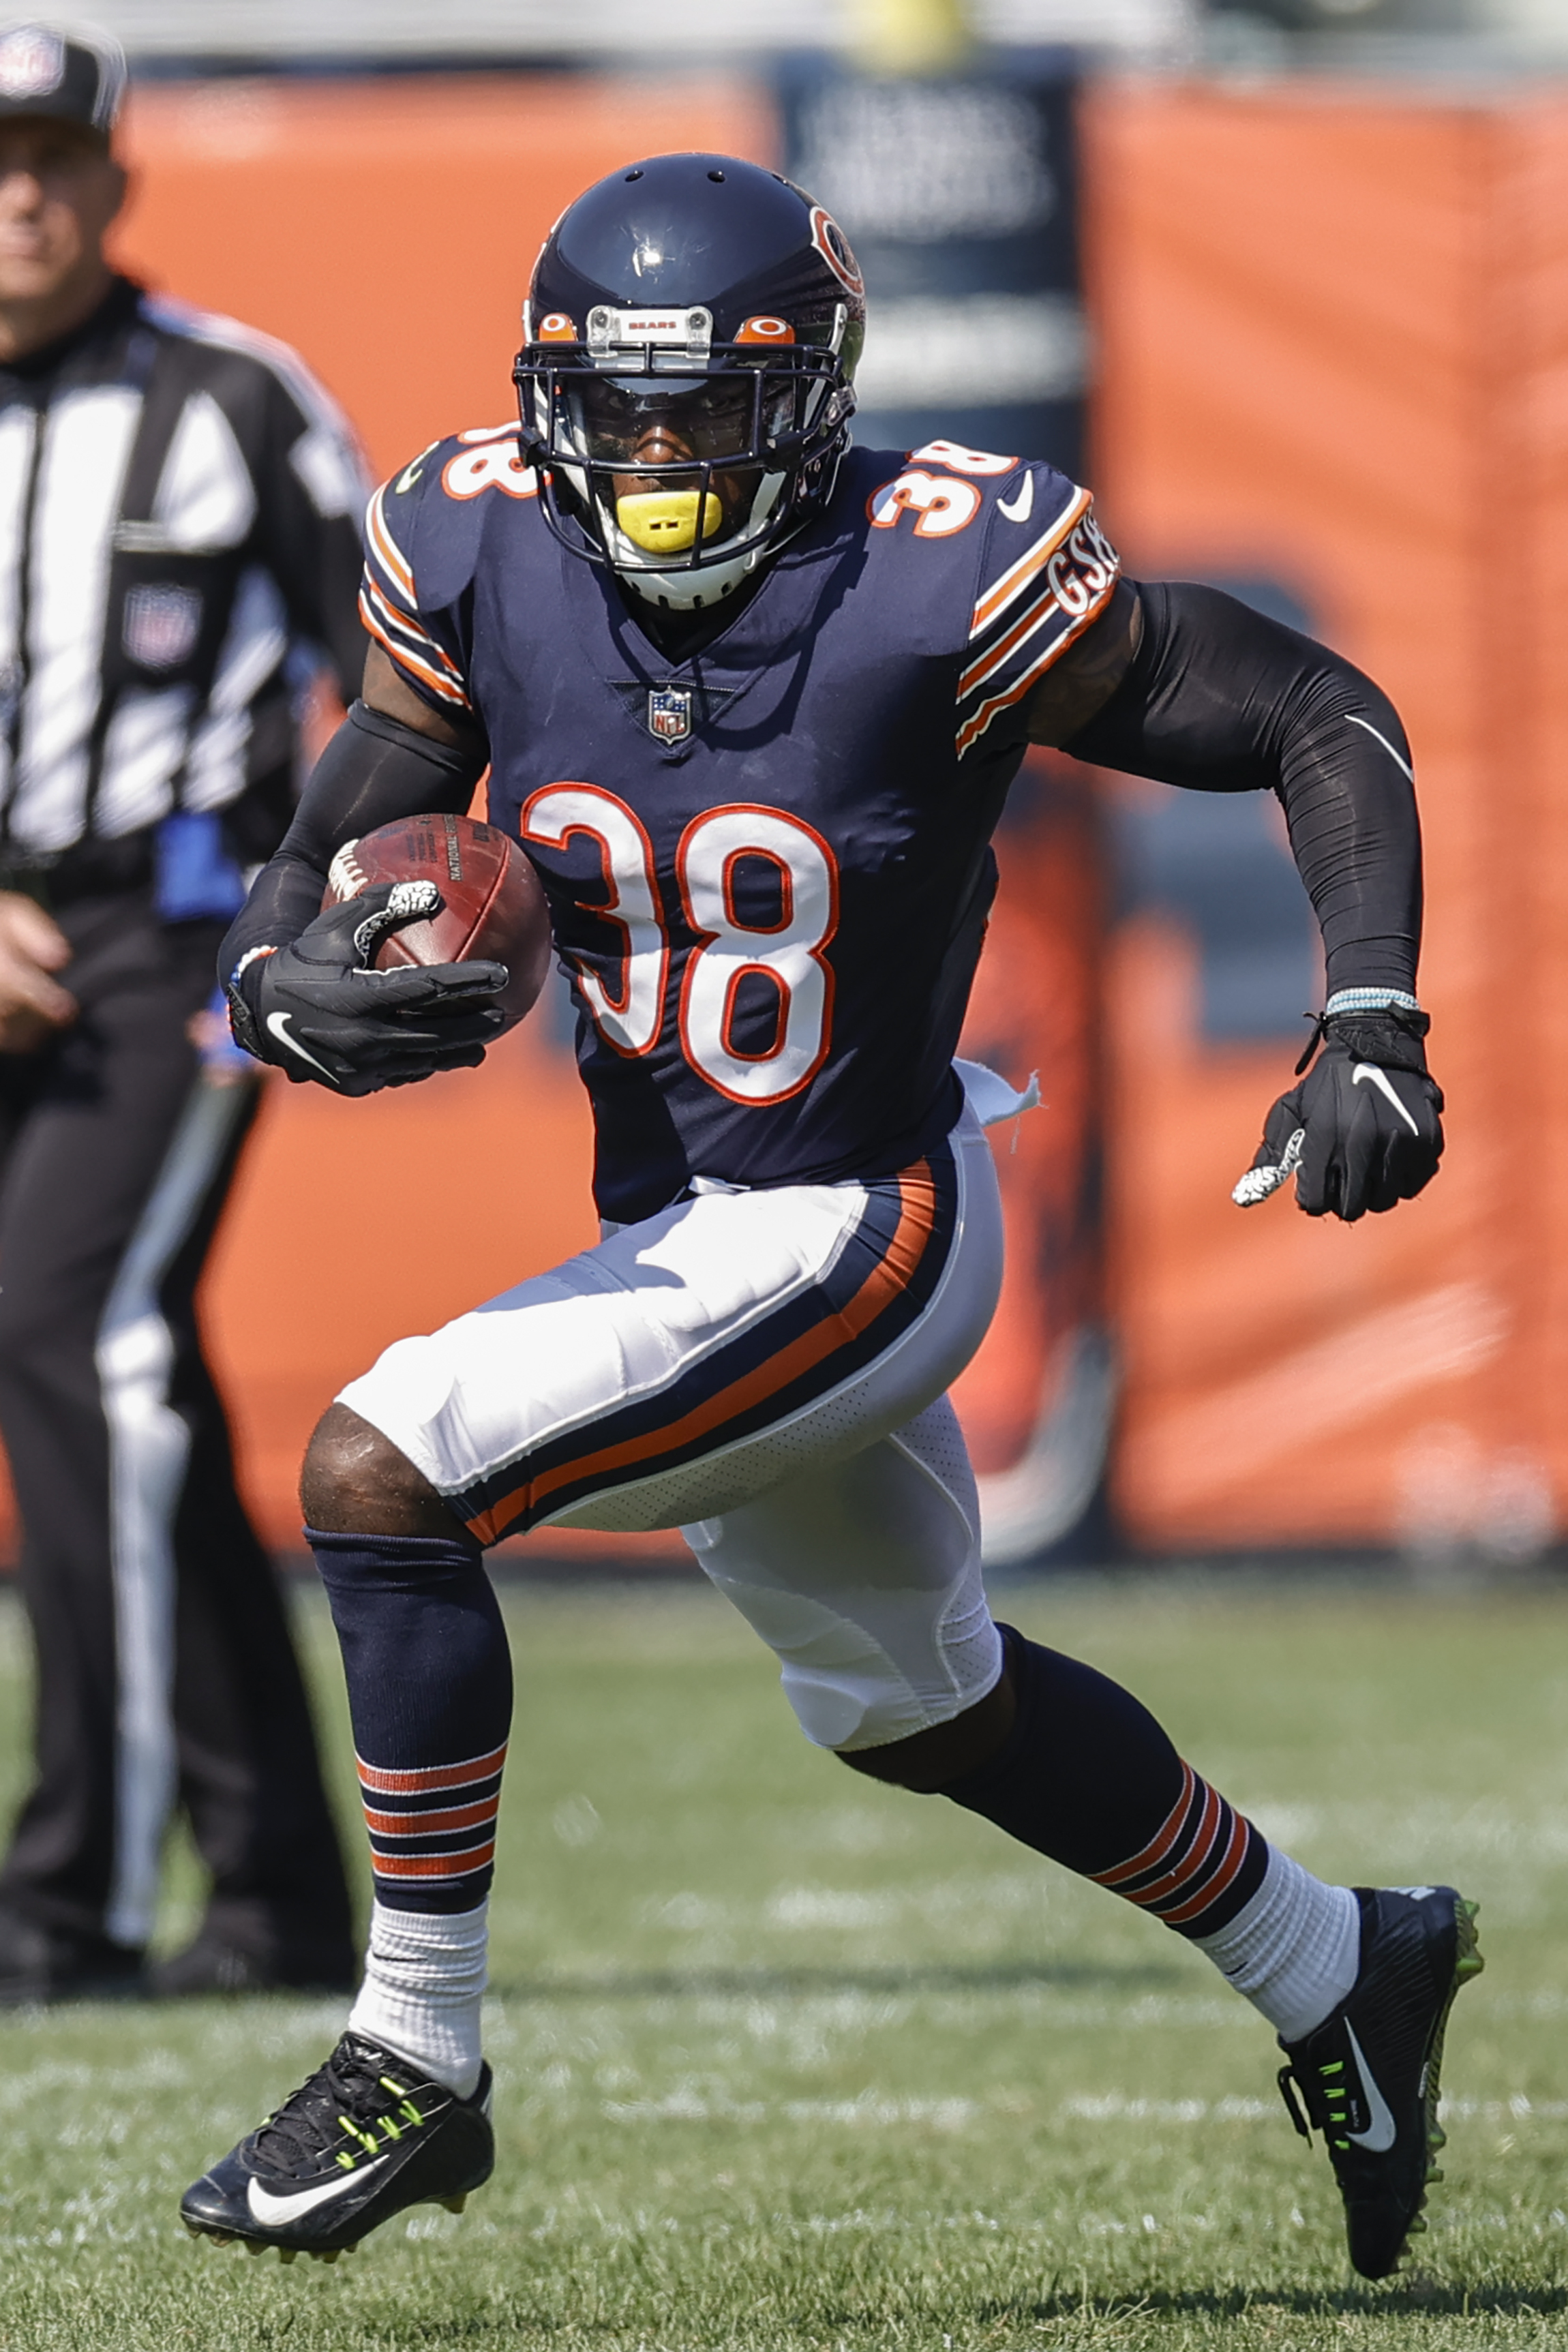 Bears safety Tashaun Gipson runs with the ball after recovering a fumble against the Bengals.